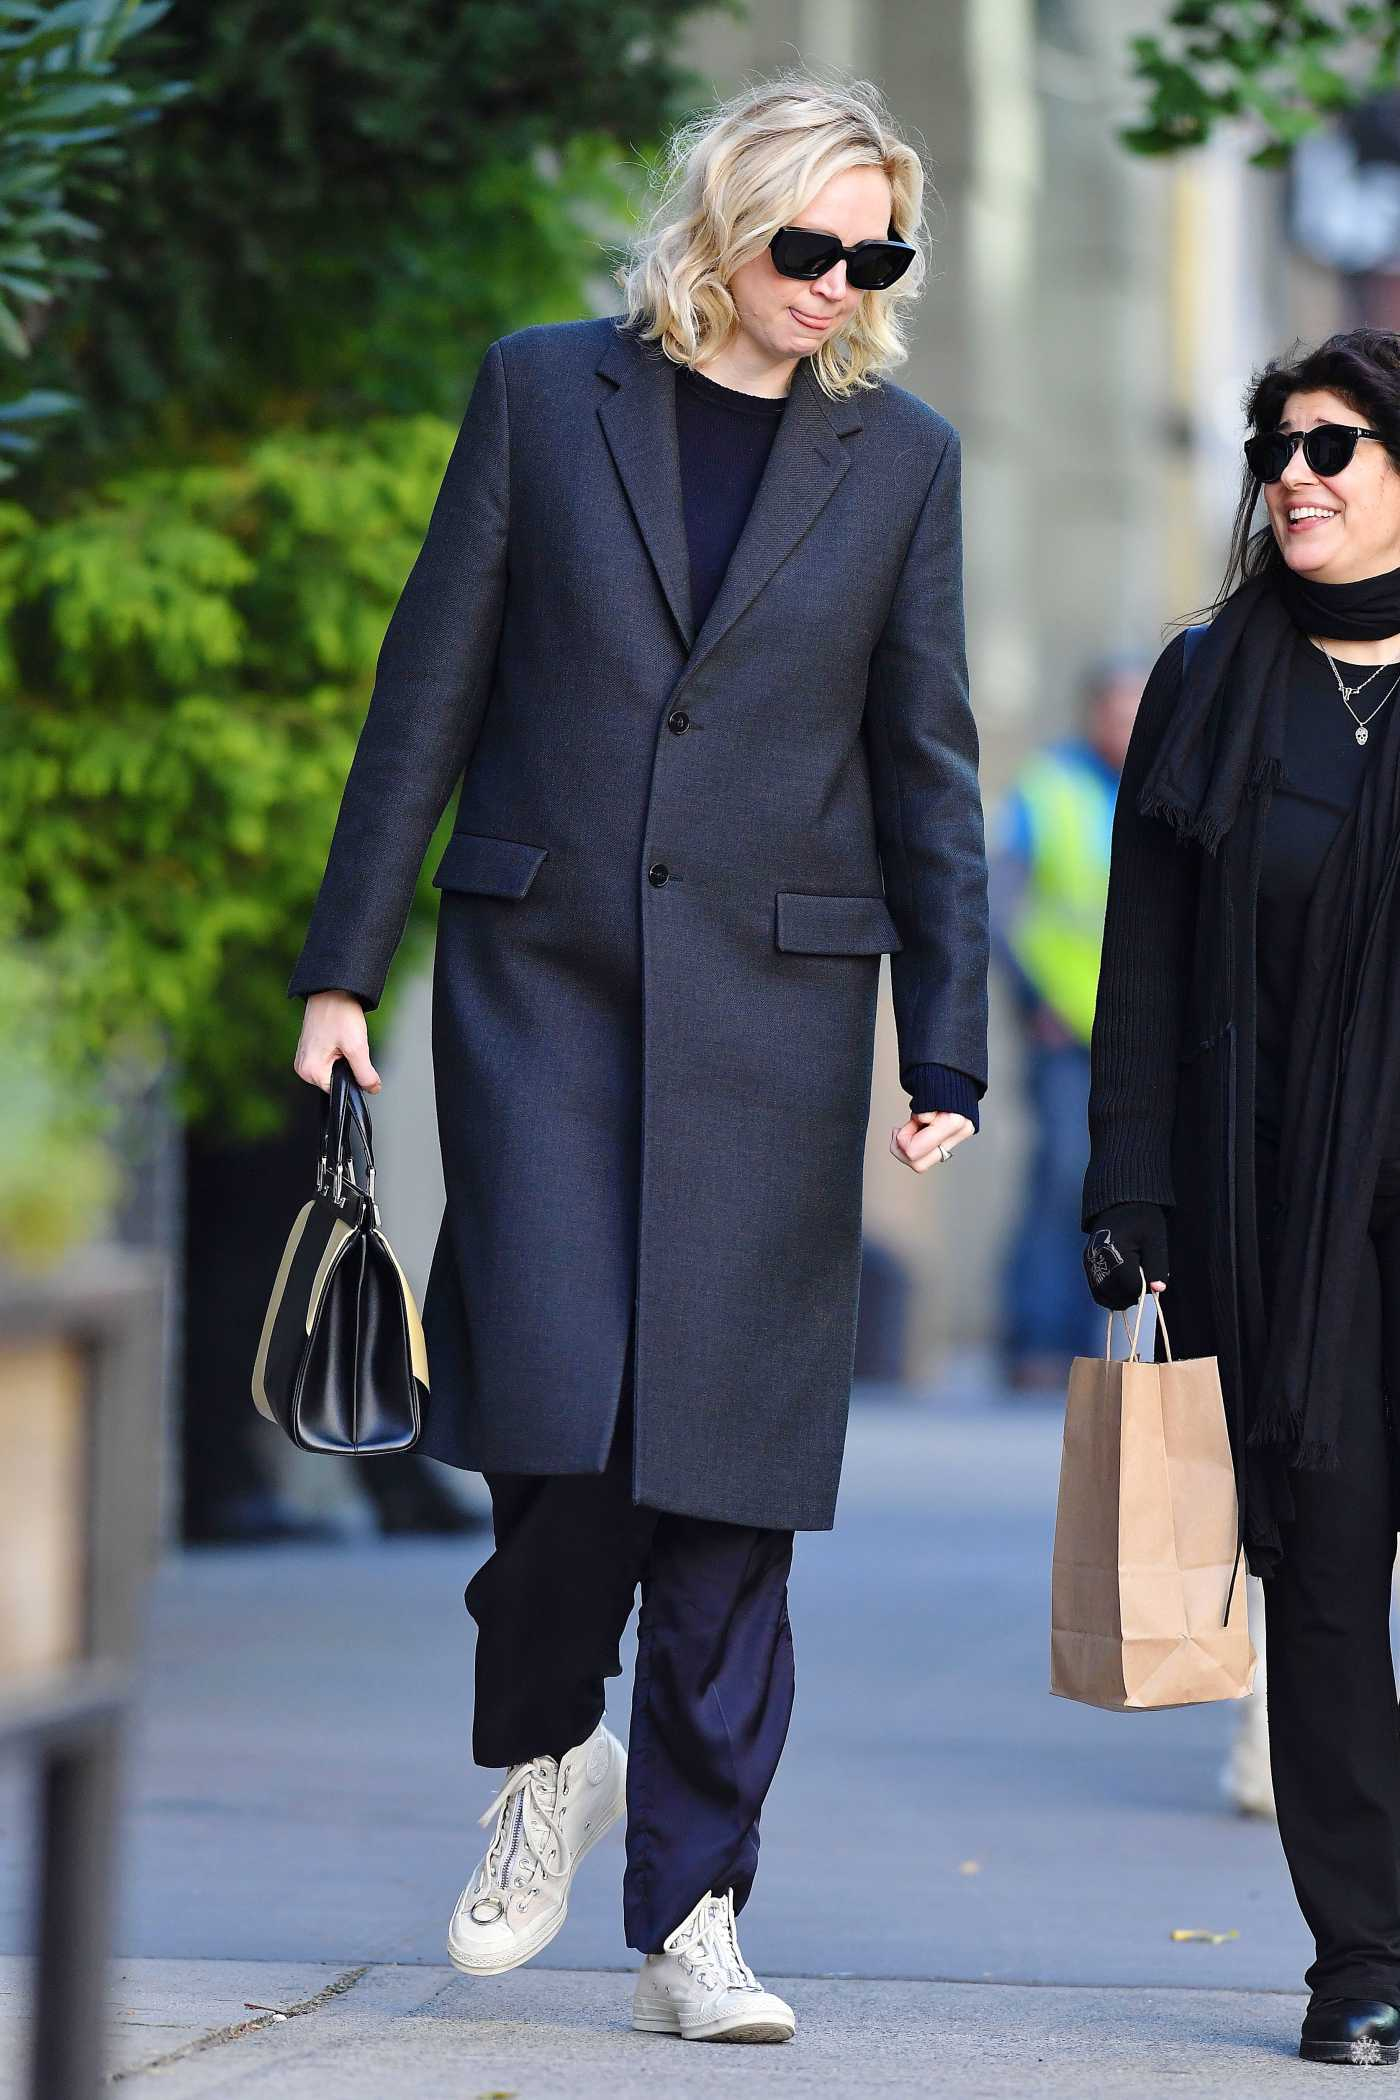 Gwendoline Christie in a Black Coat Out in New York City 10/18/2019